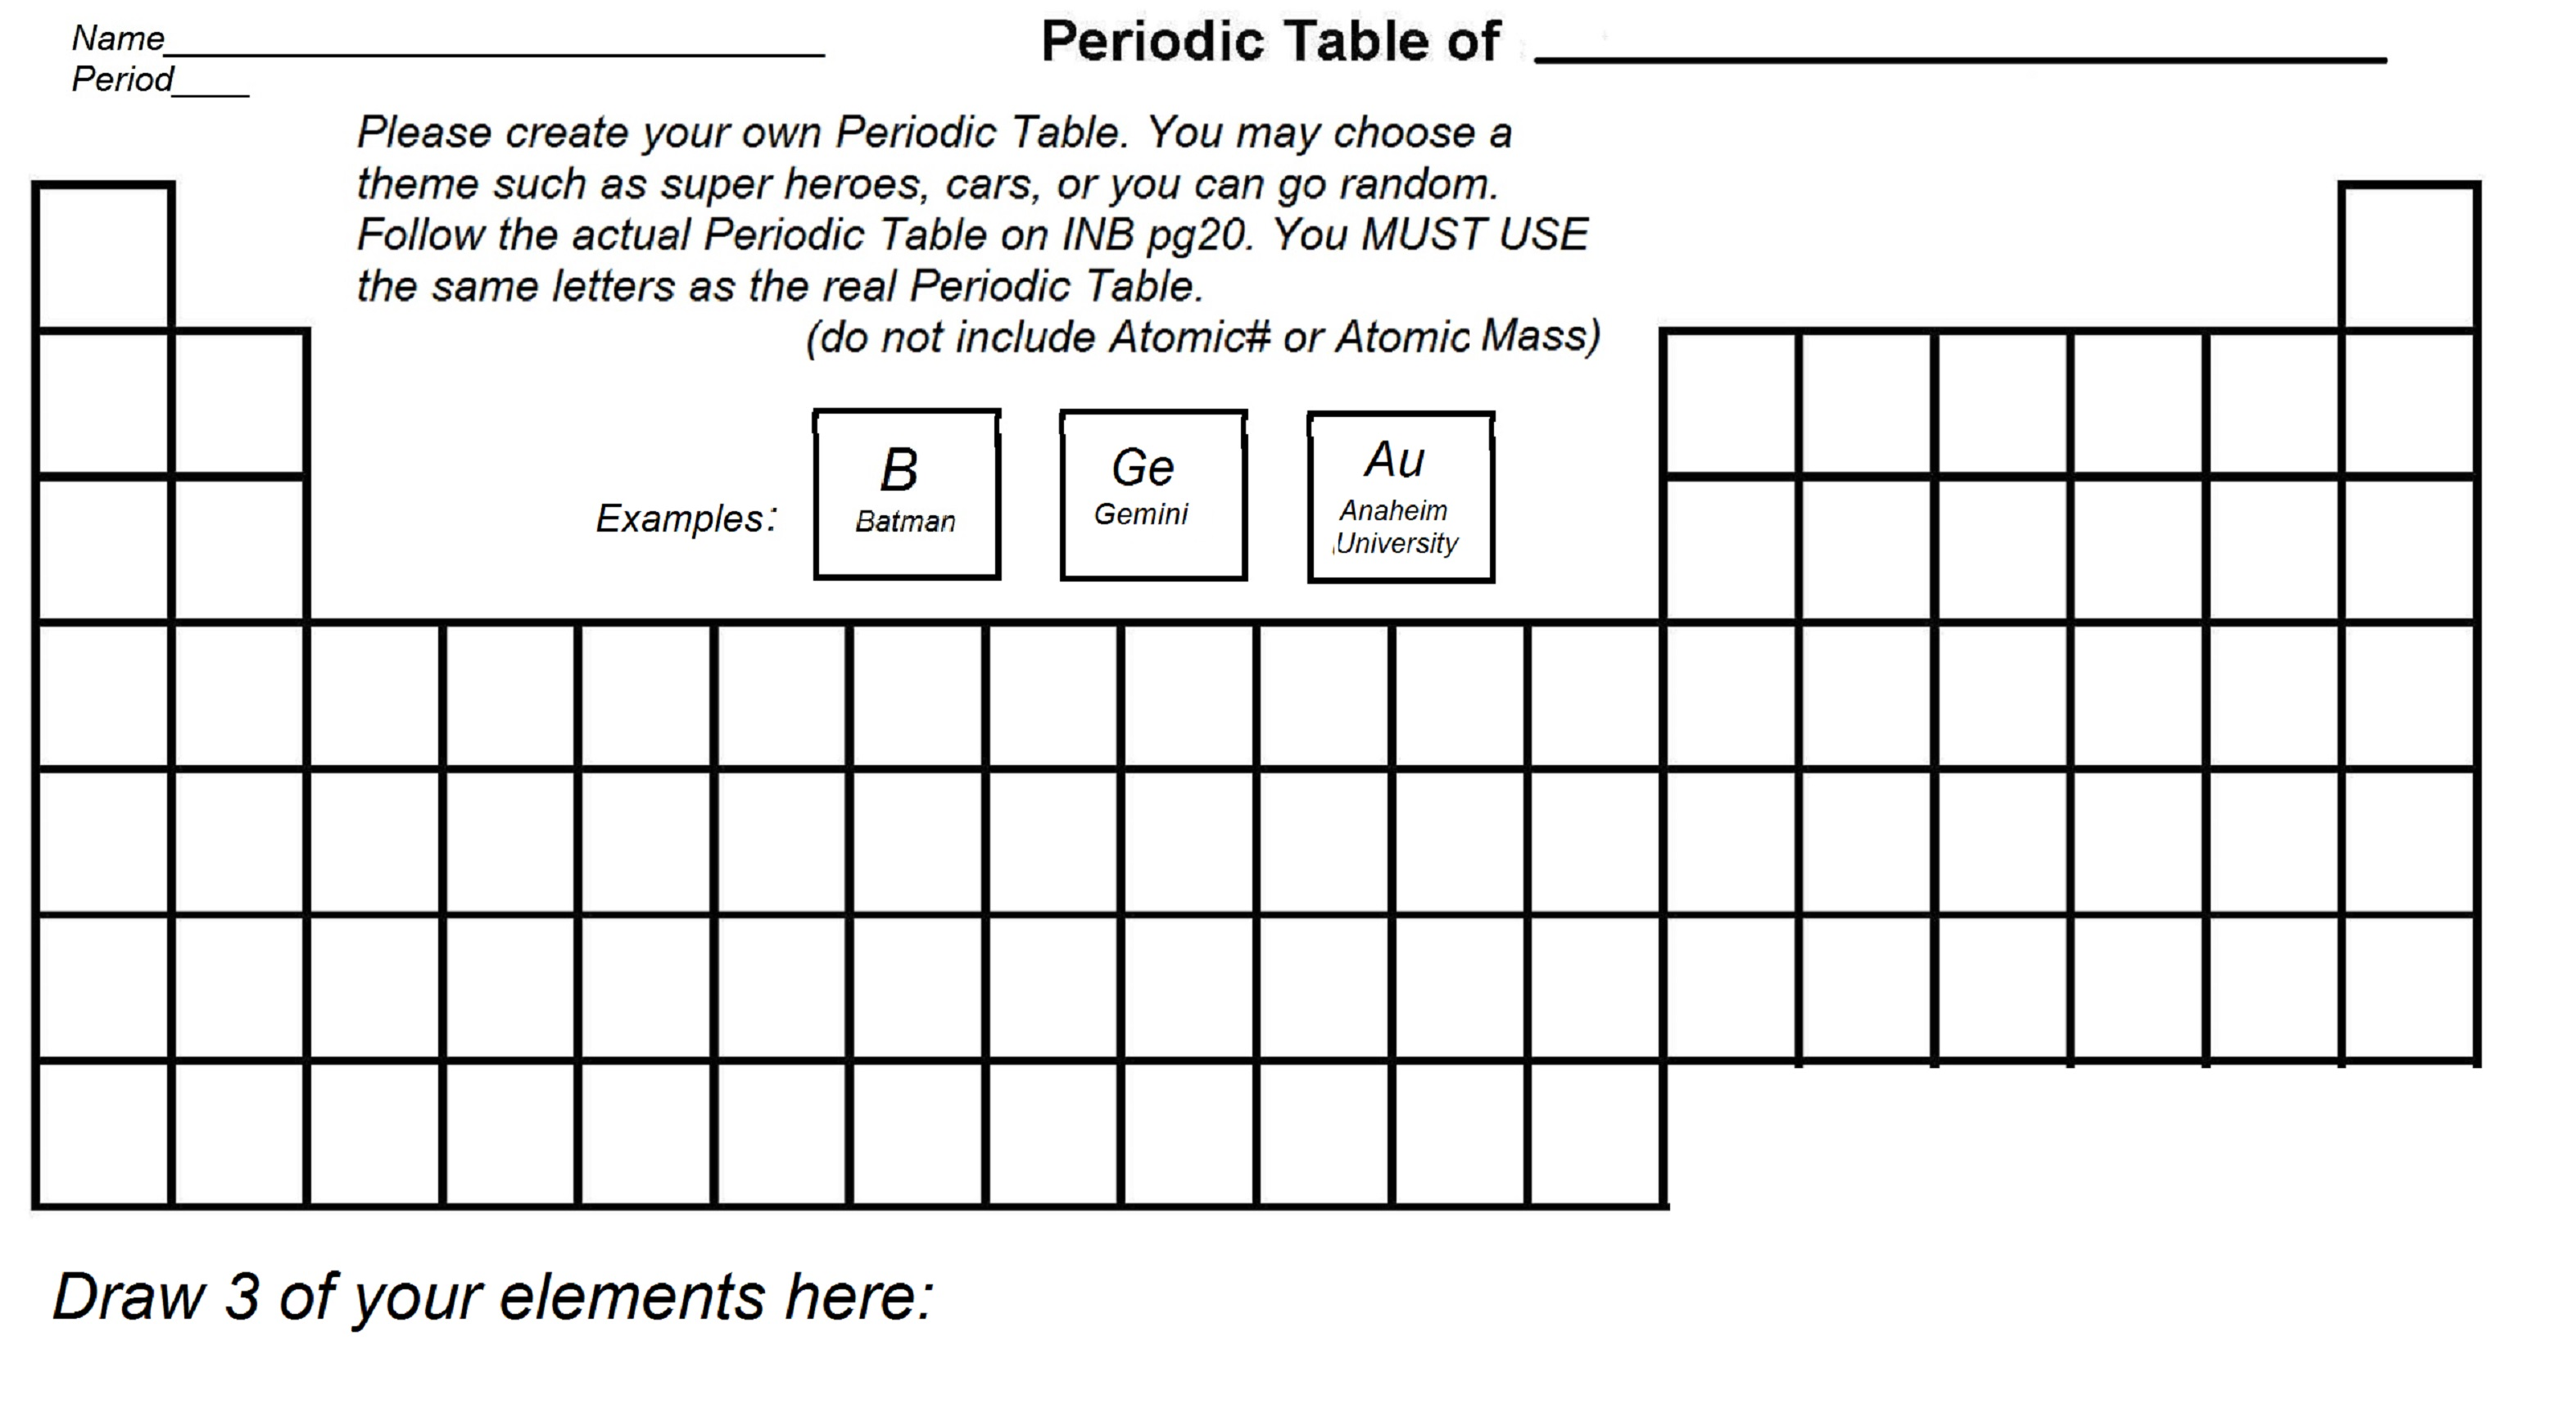 Blank periodic table of elements worksheet choice image periodic blank periodic table of elements worksheet choice image periodic archive dukajclass download file gamestrikefo choice image gamestrikefo Choice Image